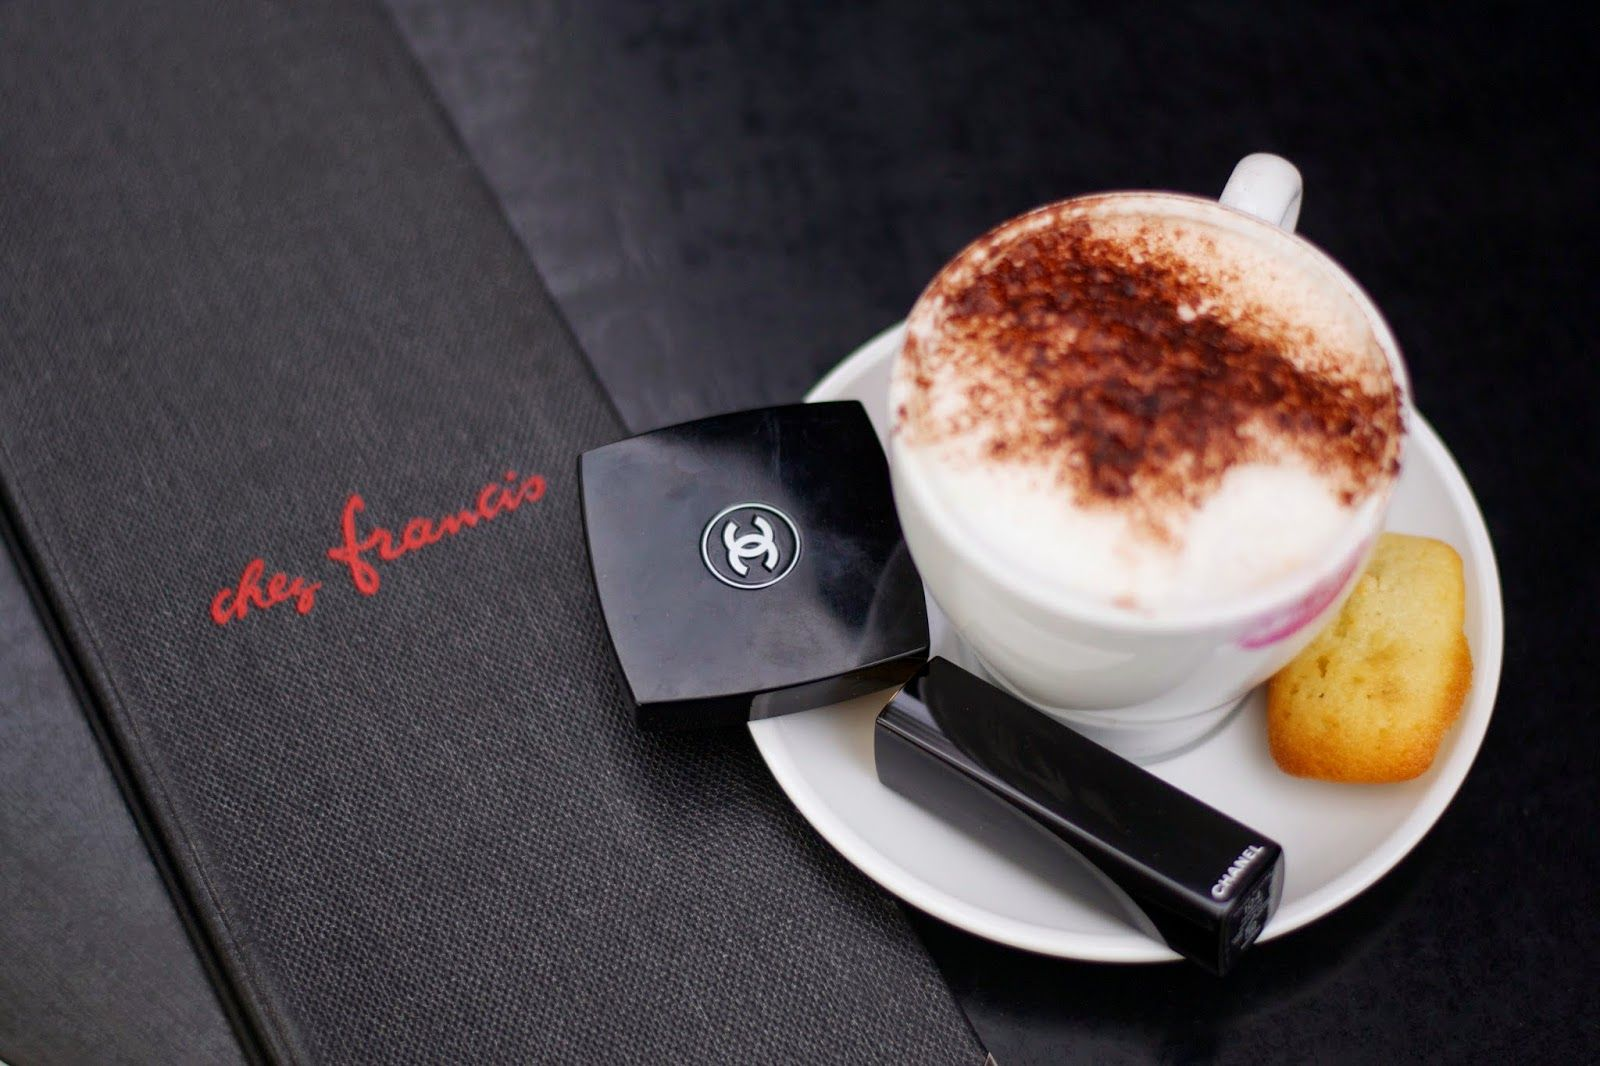 Chanel and Coffee